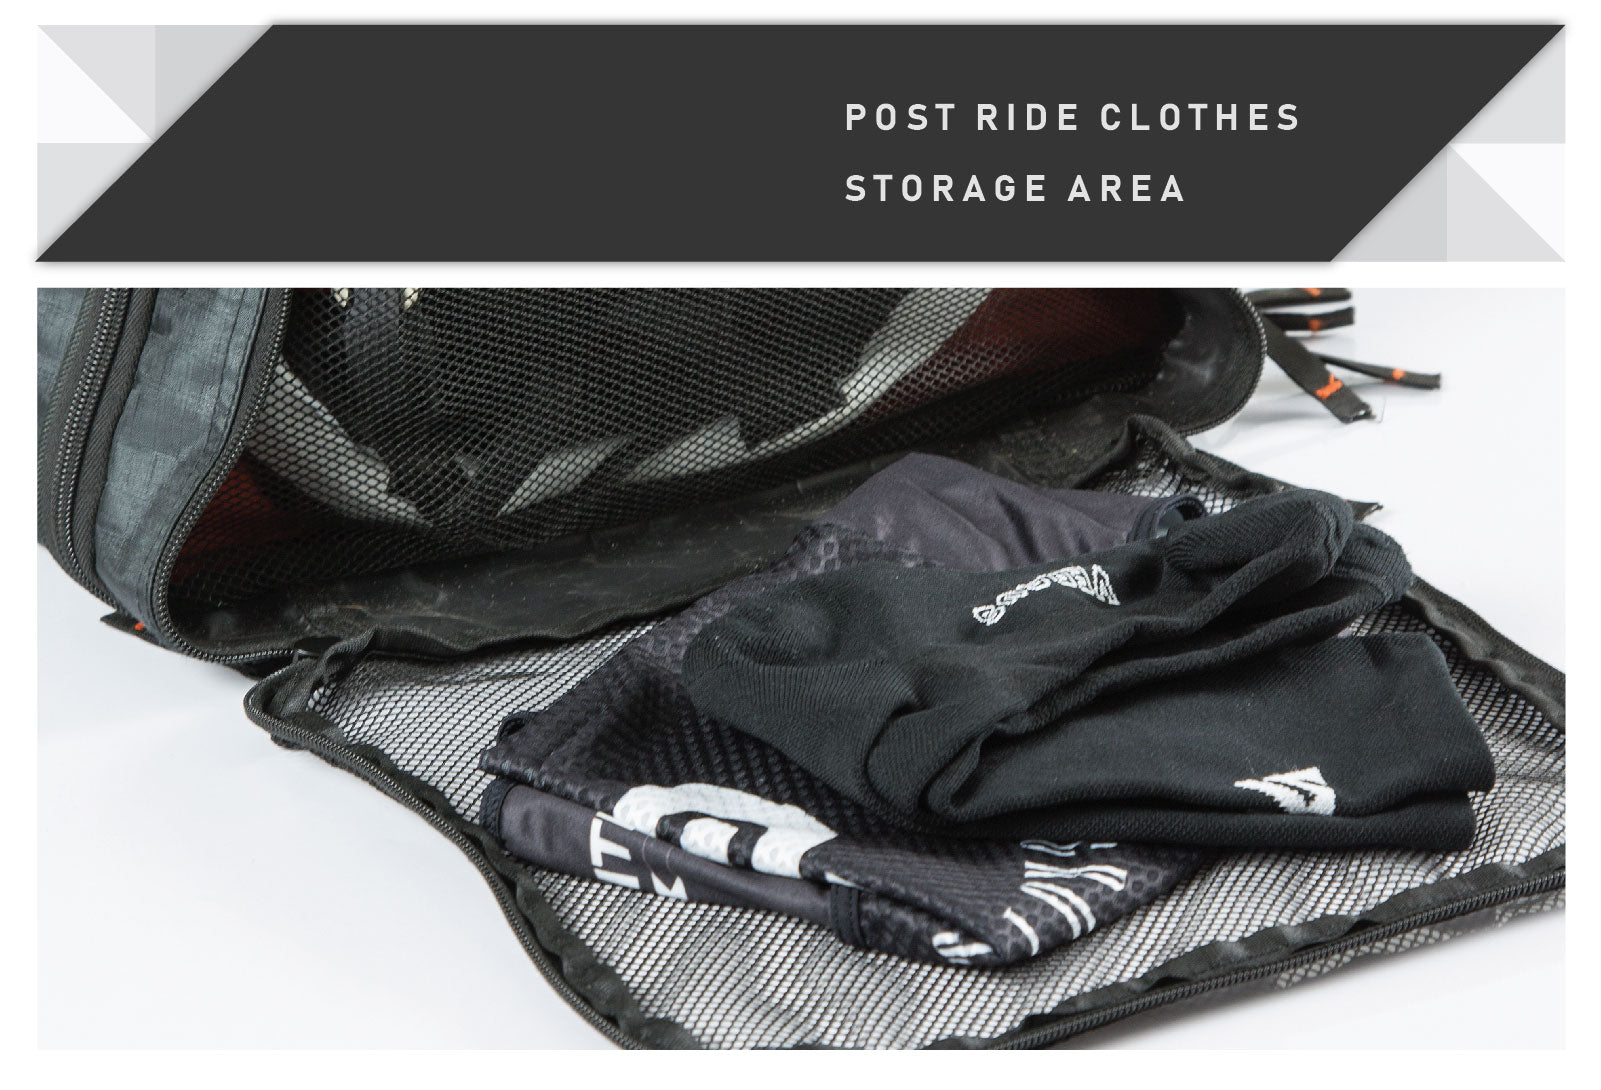 Essentials Kit Bag post ride storage